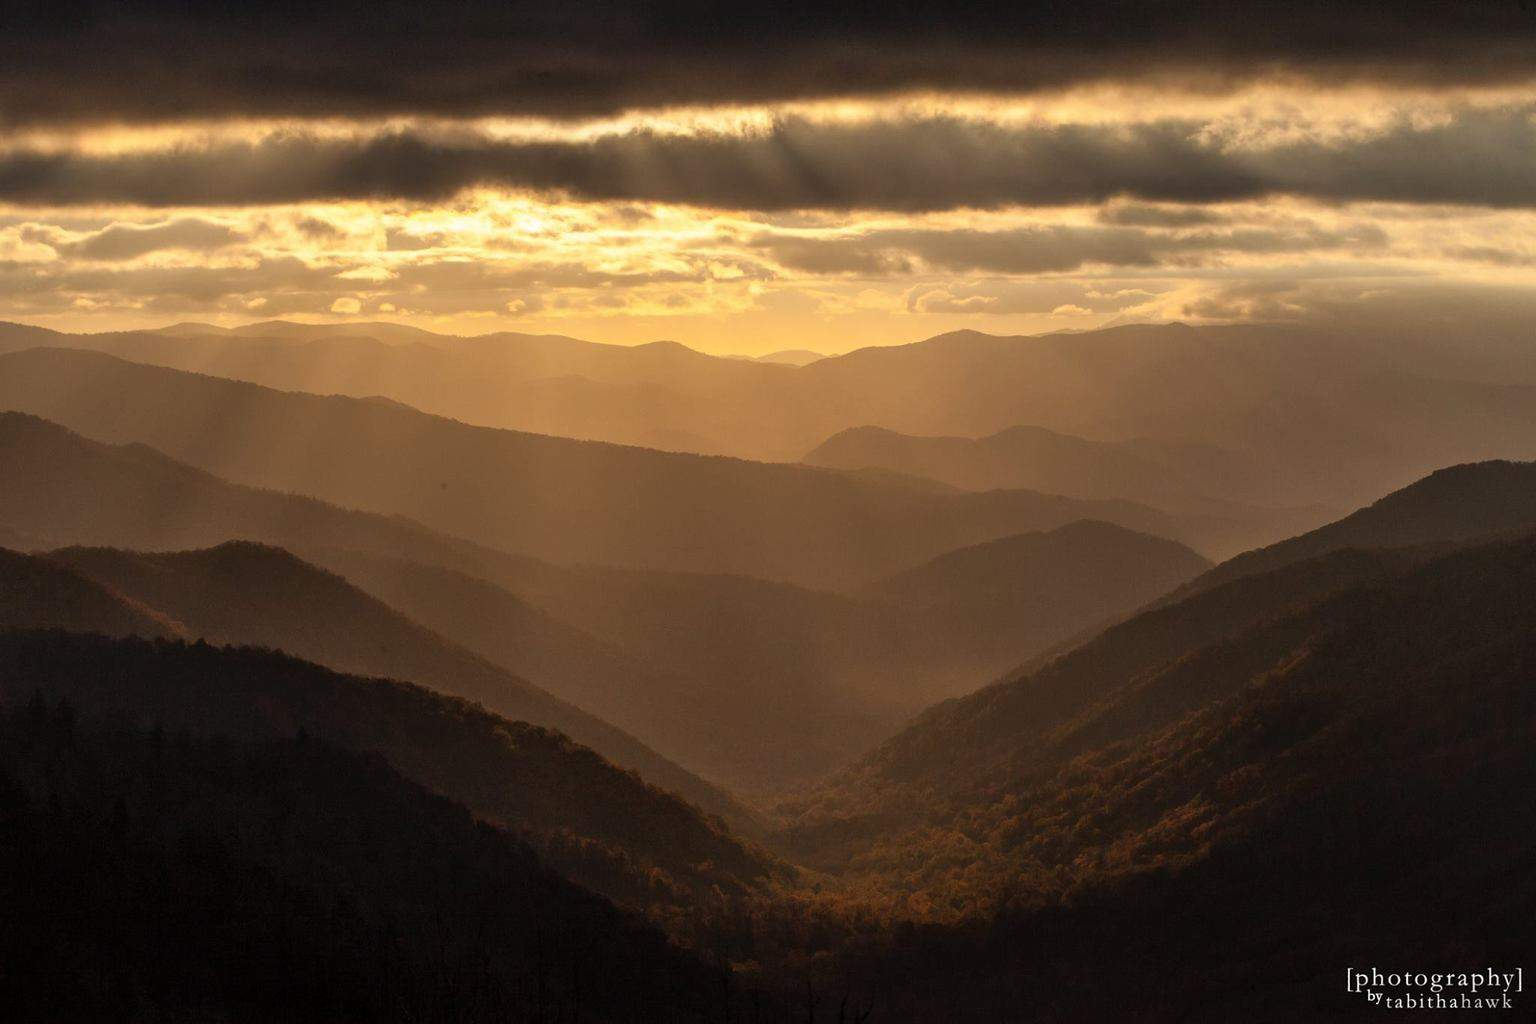 Sunrise in the Great Smoky Mountains from Clingman's Dome in Fall